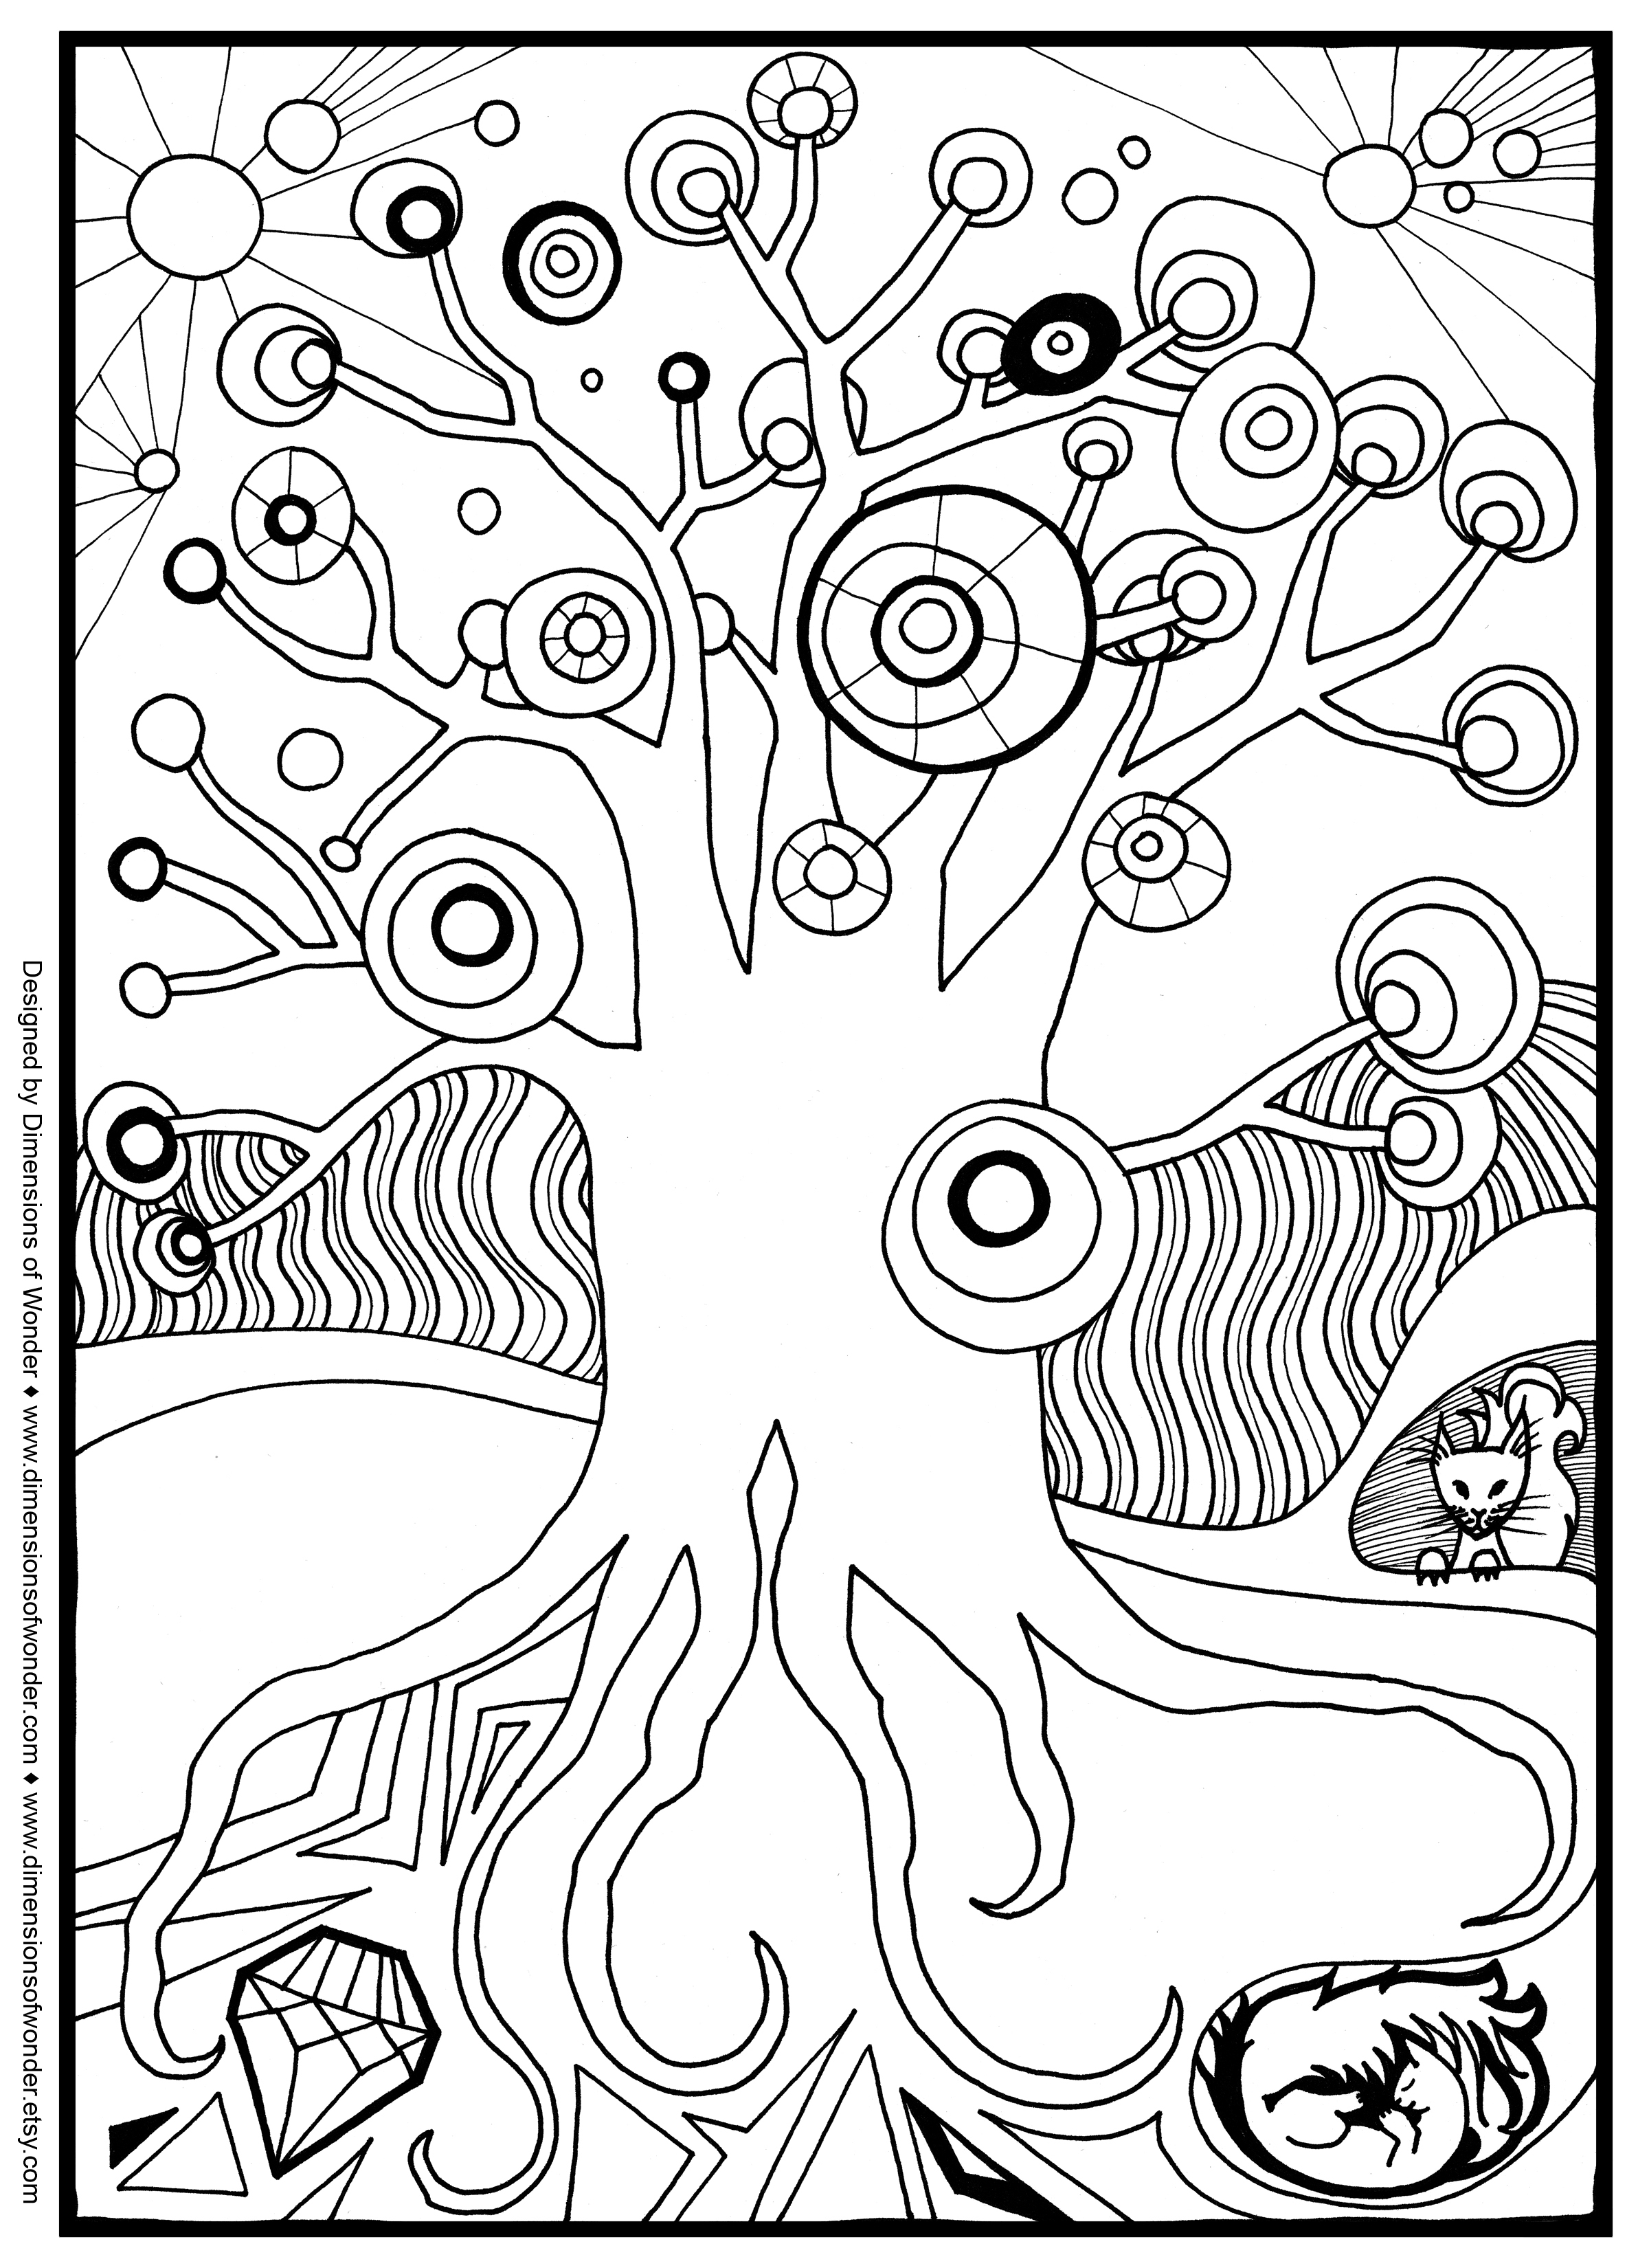 Halloween Scene Coloring Pages At Getcolorings